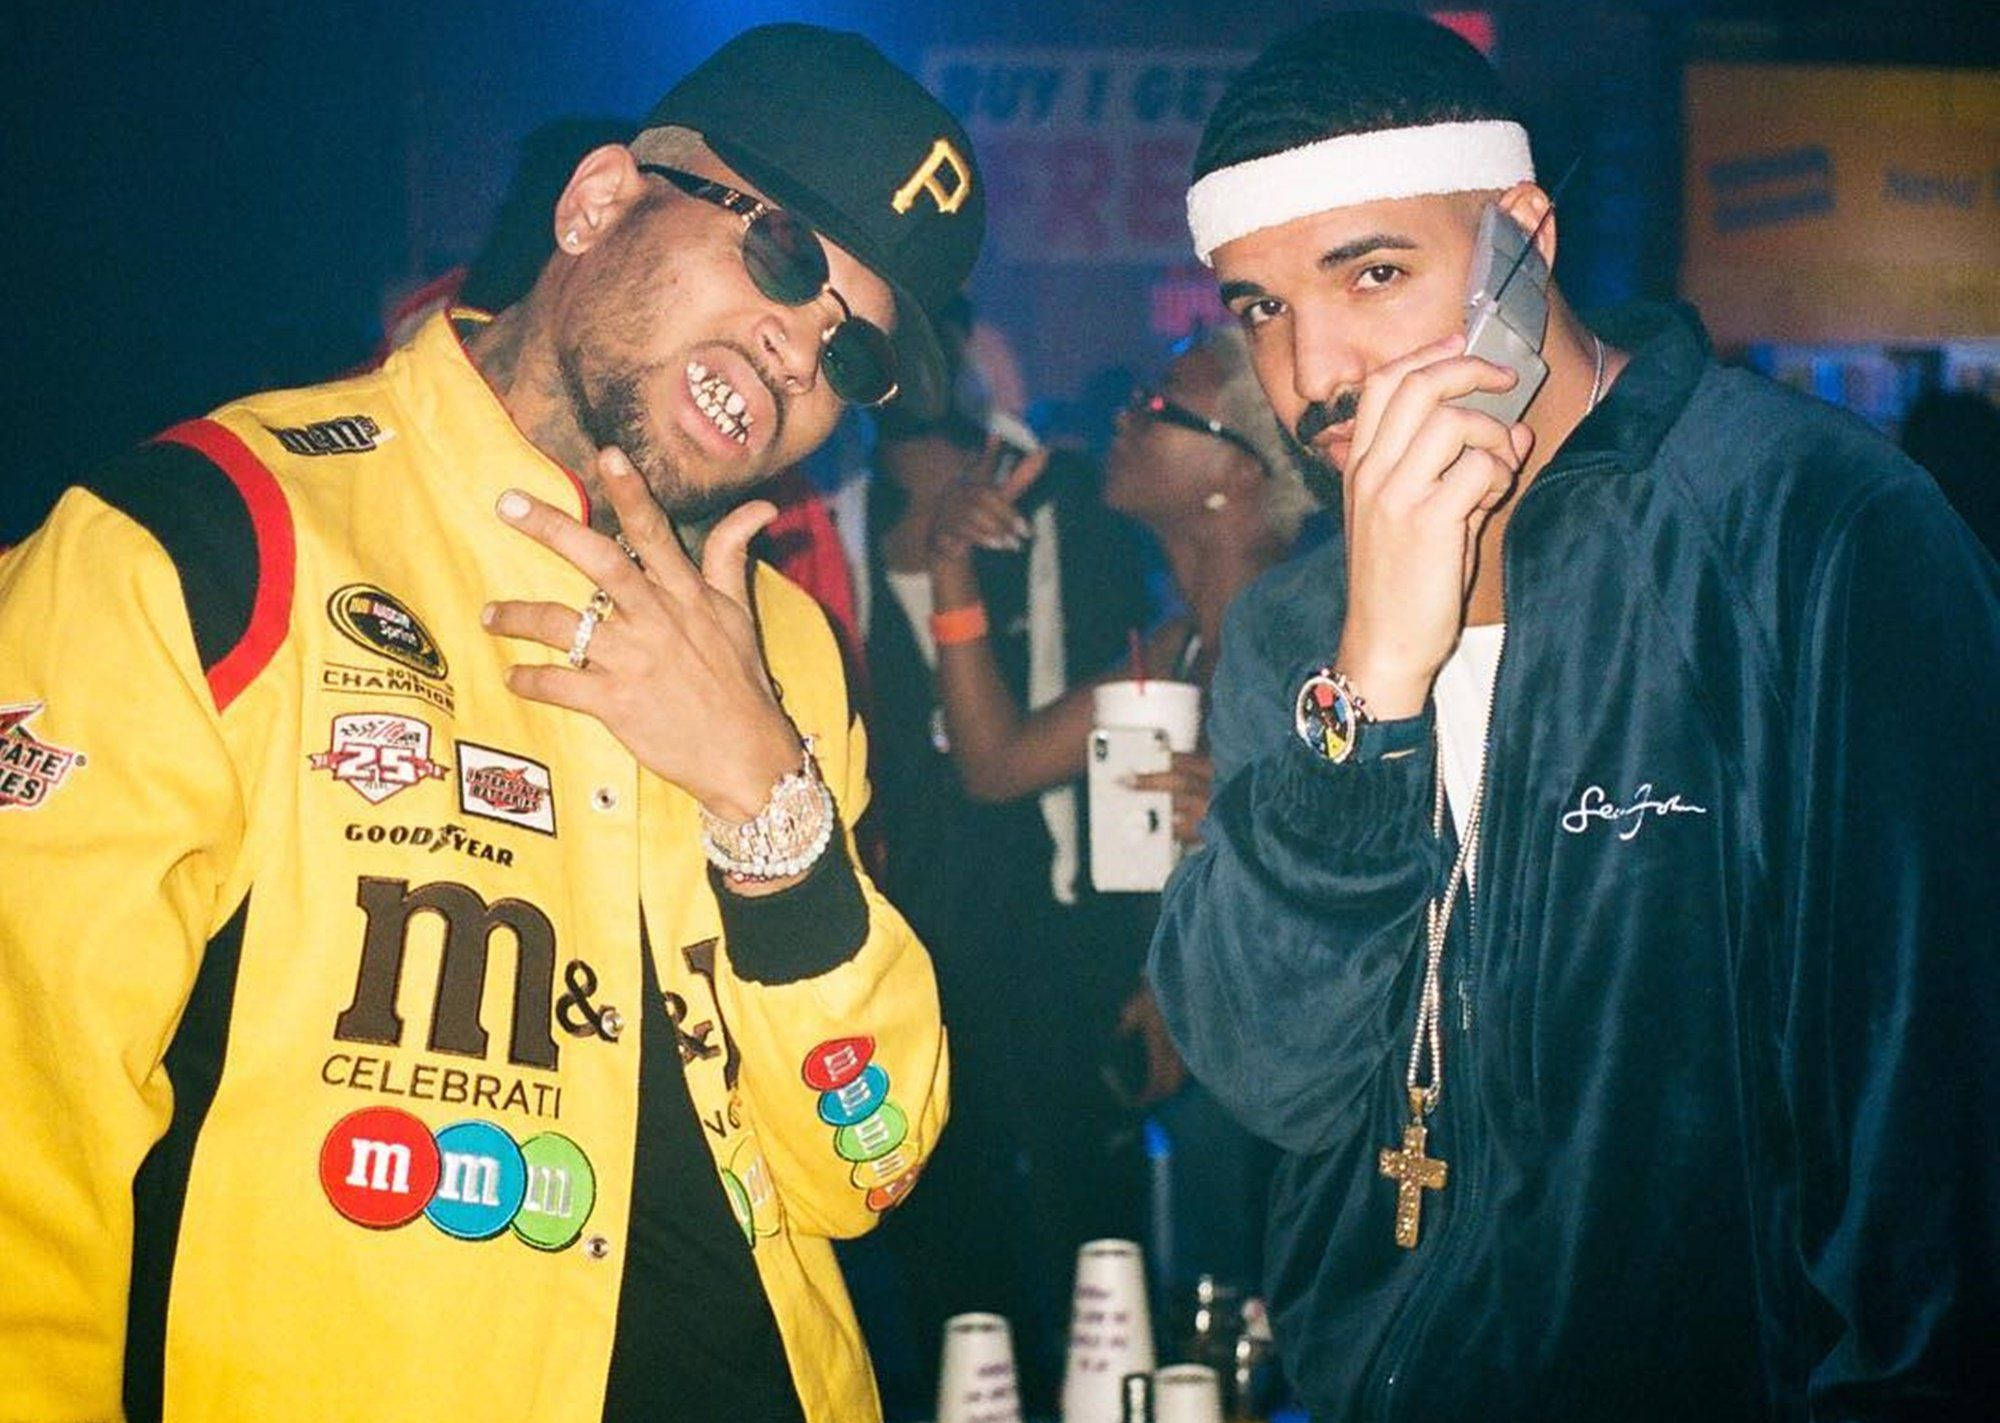 Drake Poses With Chris Brown In Picture From His Birthday Bash How Does Rihanna Feel About The Bromance Chris Brown Party Breezy Chris Brown Chris Brown Wallpaper